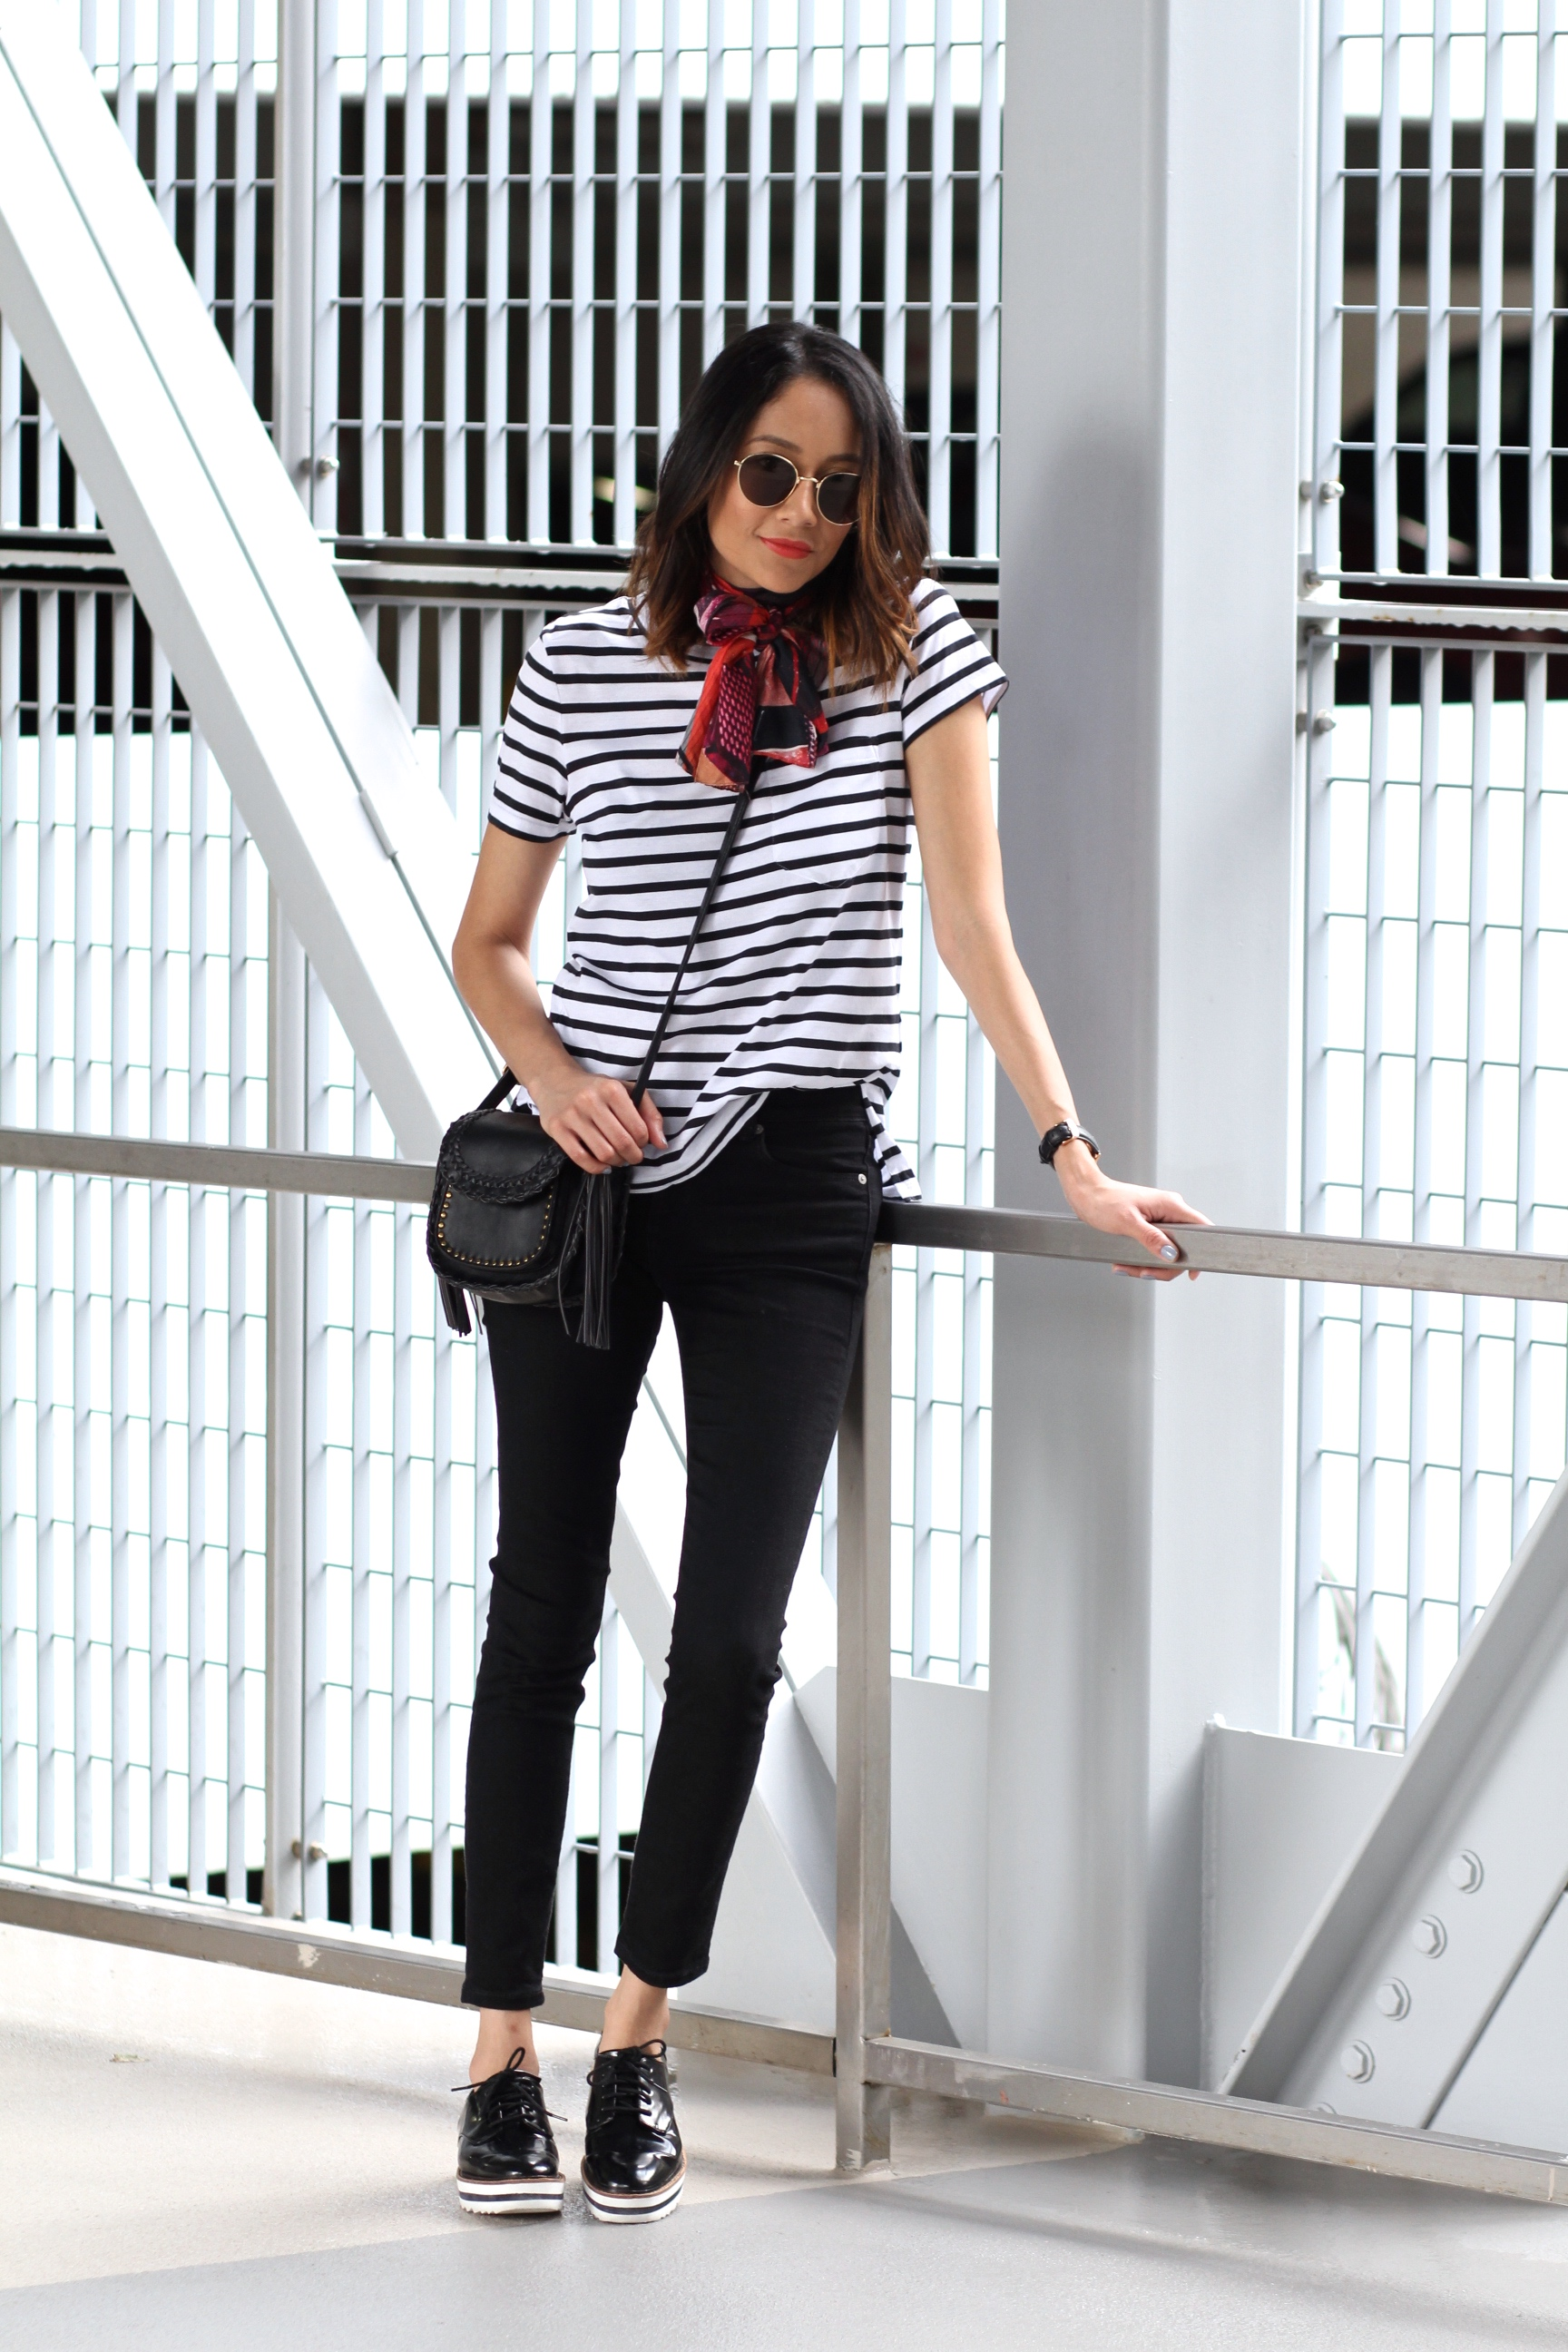 Lifestyle blogger Lilly Beltran from Daily Craving wearing a striped tee and scarf